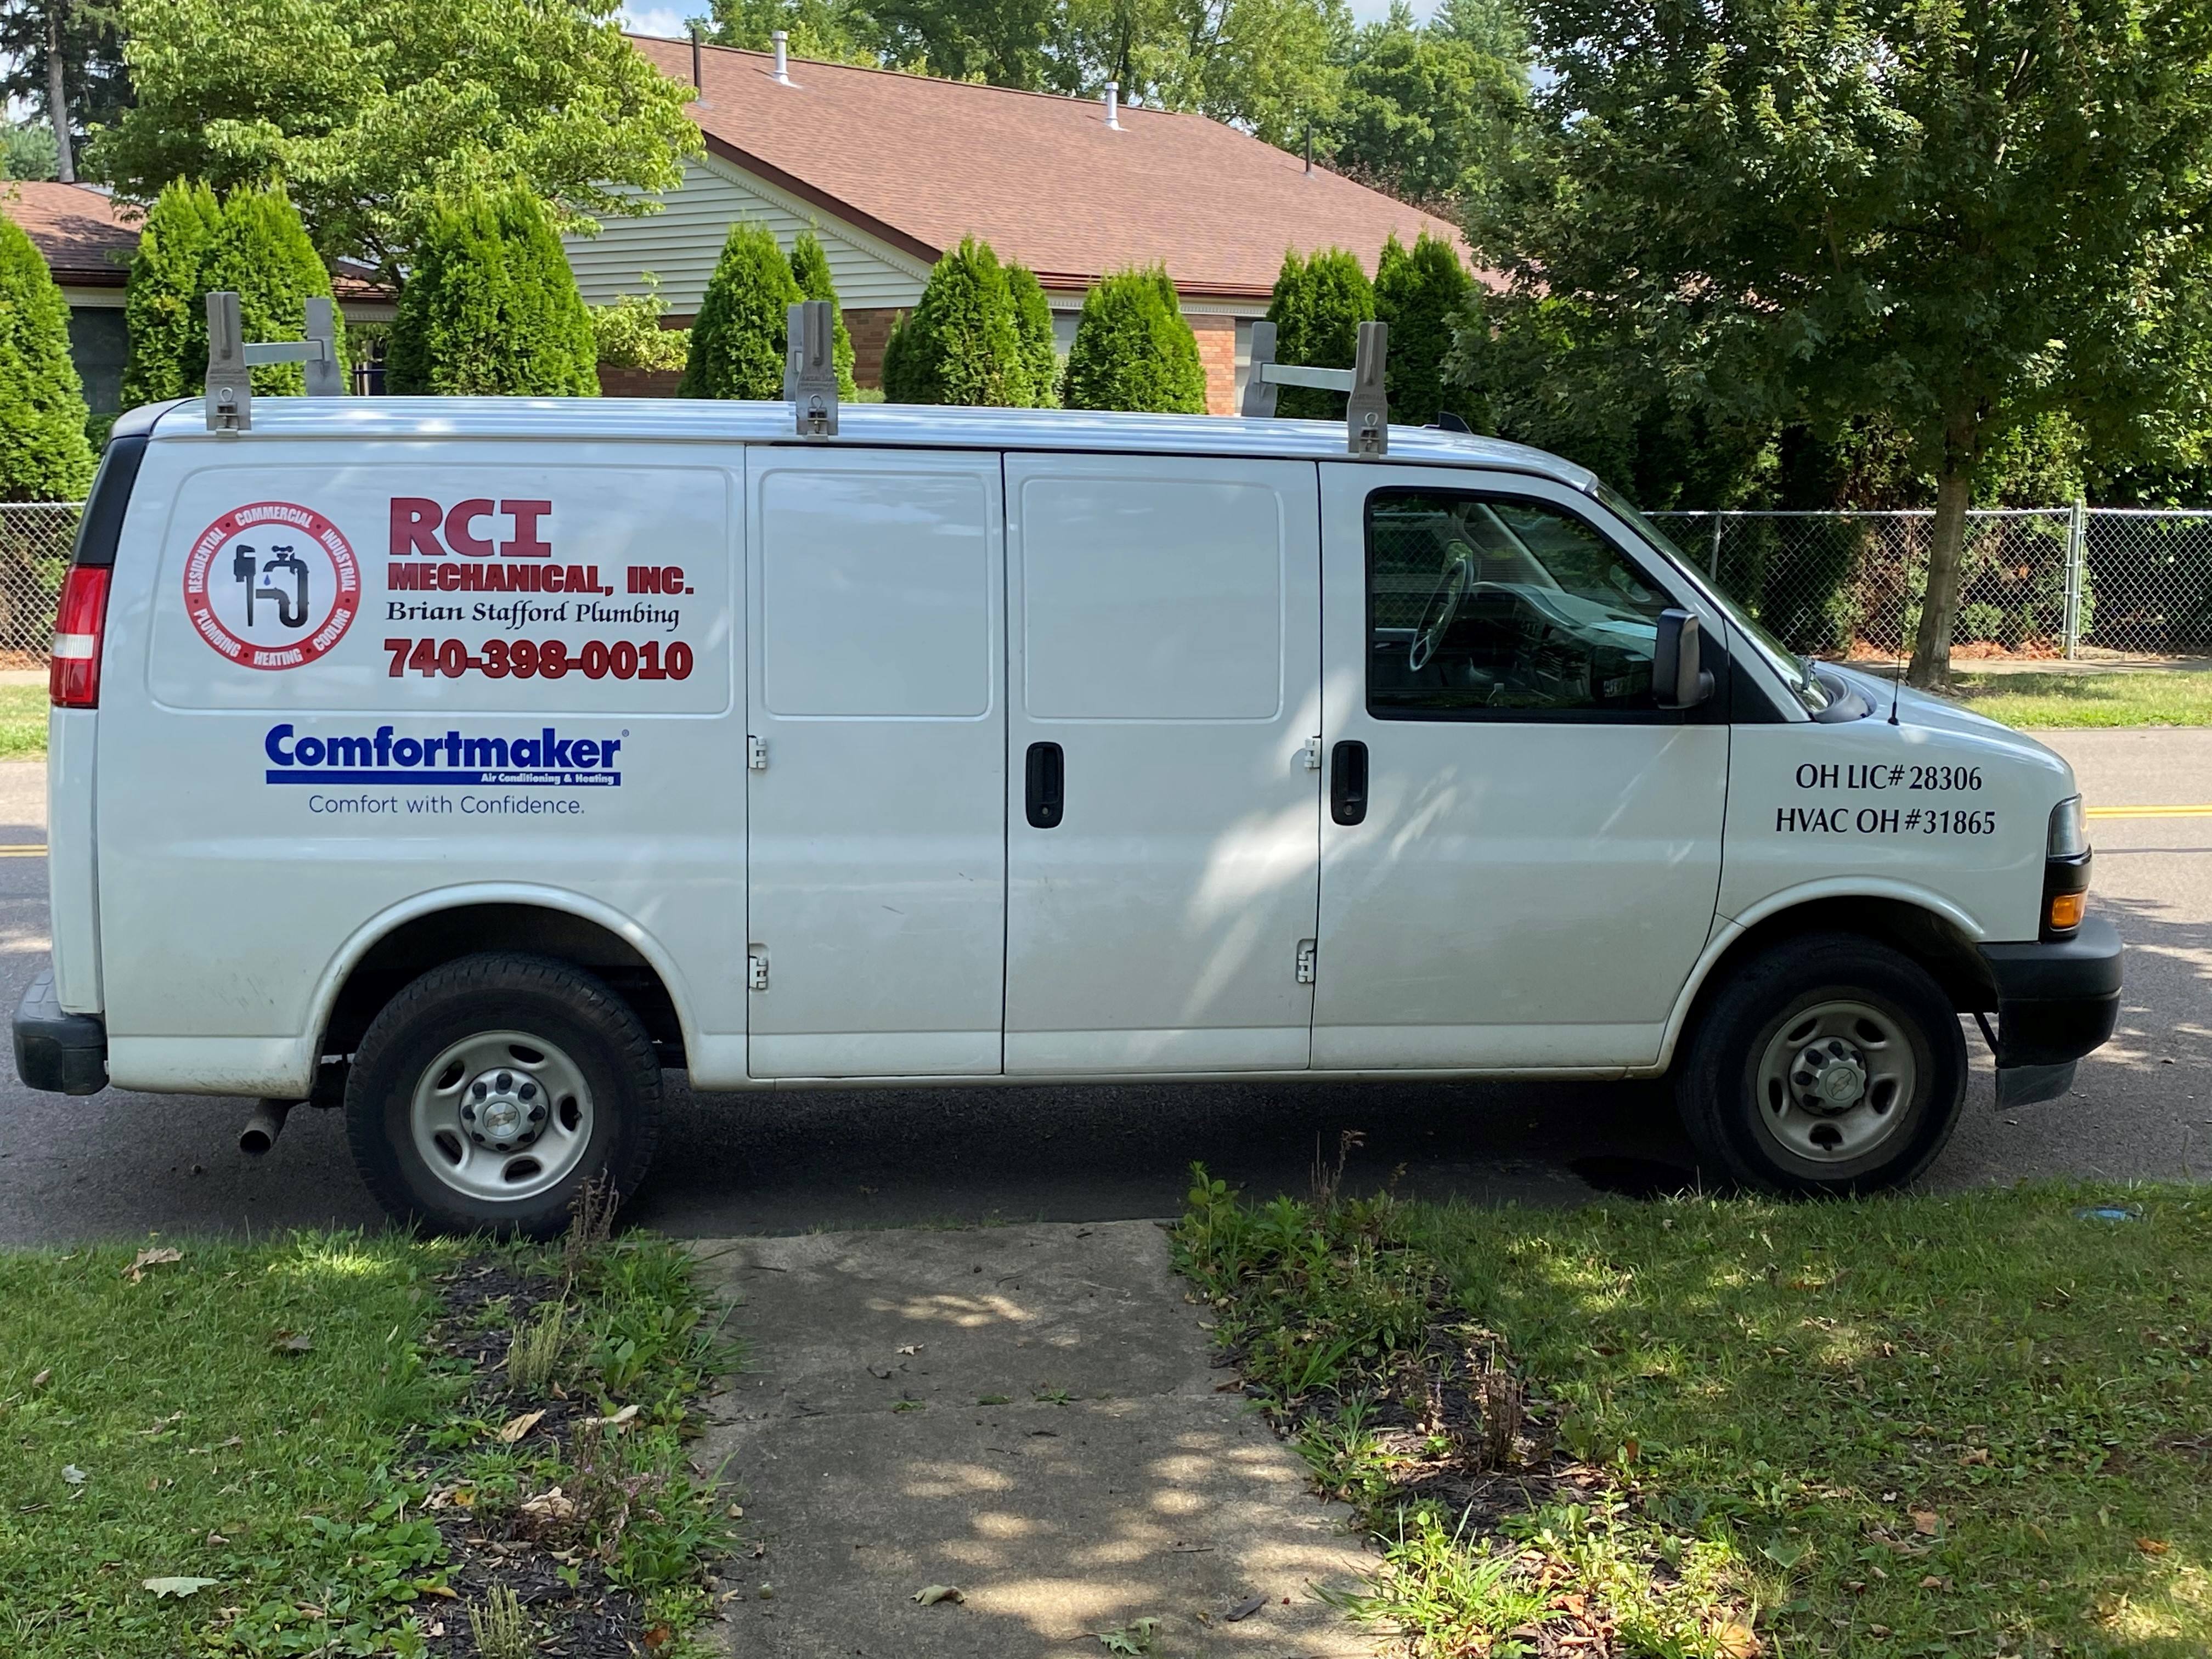 RCI Mechanical reviews | Heating & Air Conditioning/HVAC at Mount Vernon OH